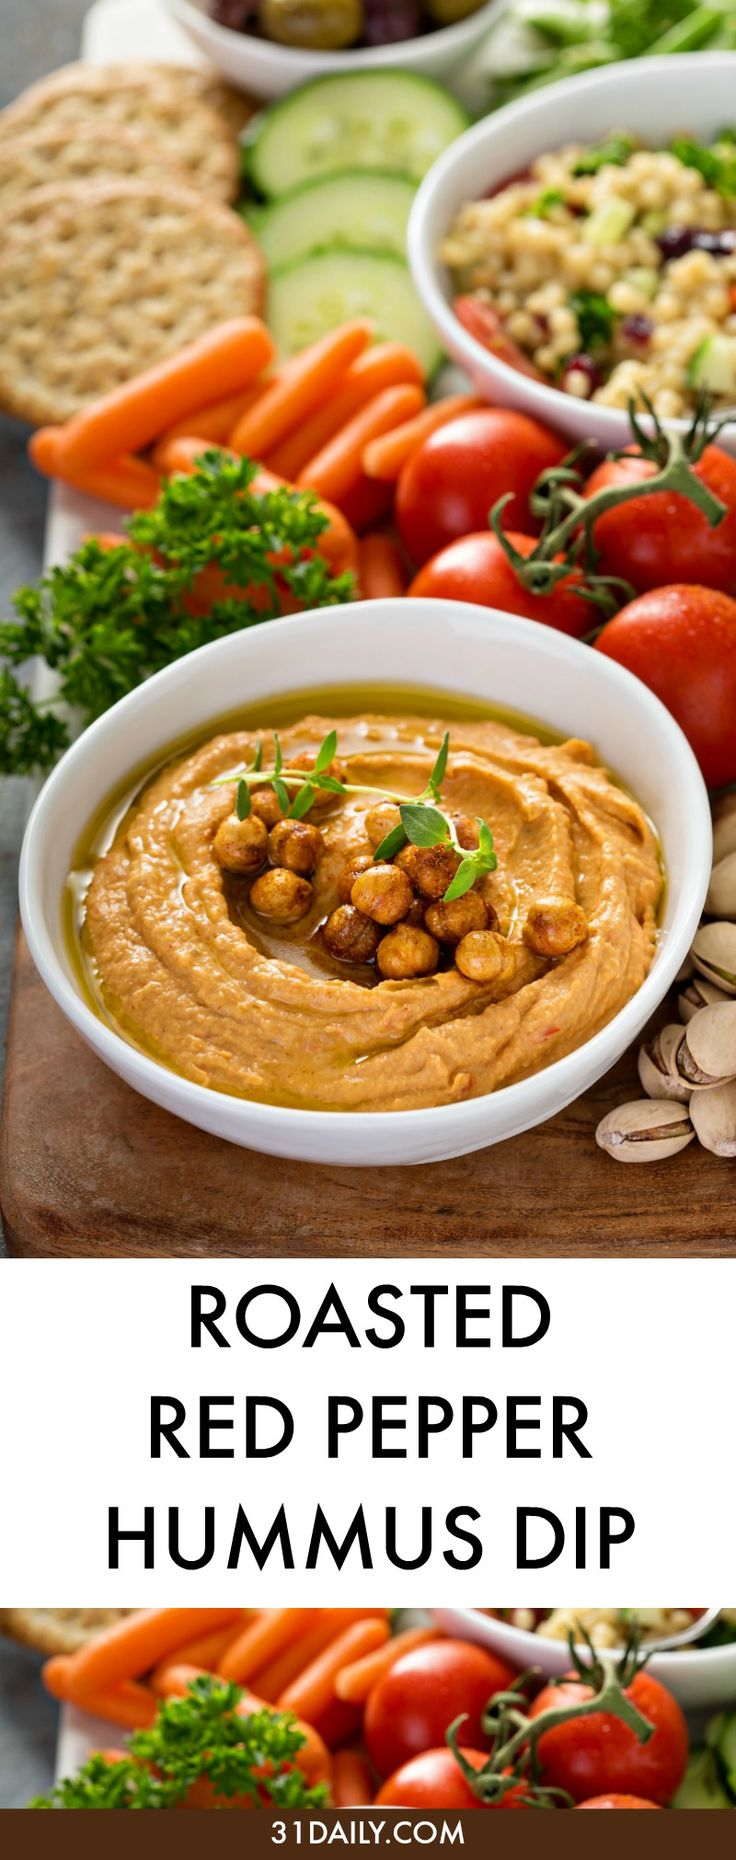 25 best healthy movie snacks ideas on pinterest for Recipe red pepper hummus